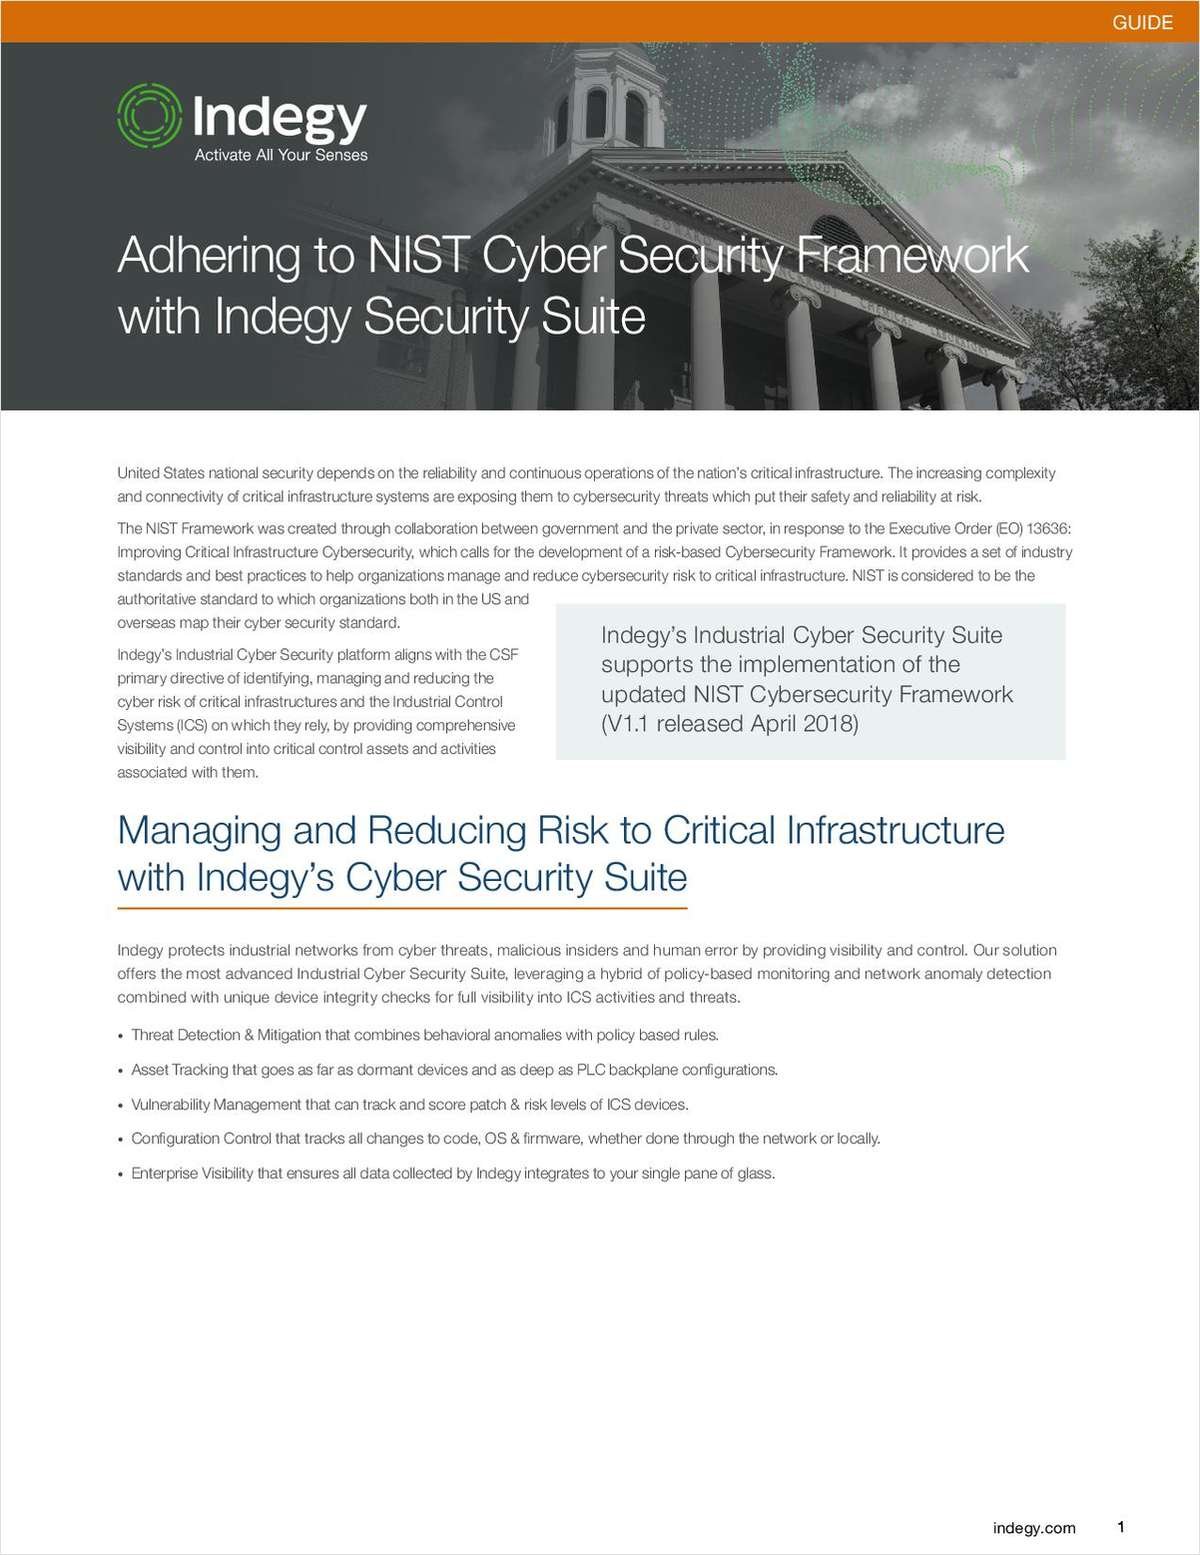 Adhering to the NIST Cybersecurity Framework, Free Indegy